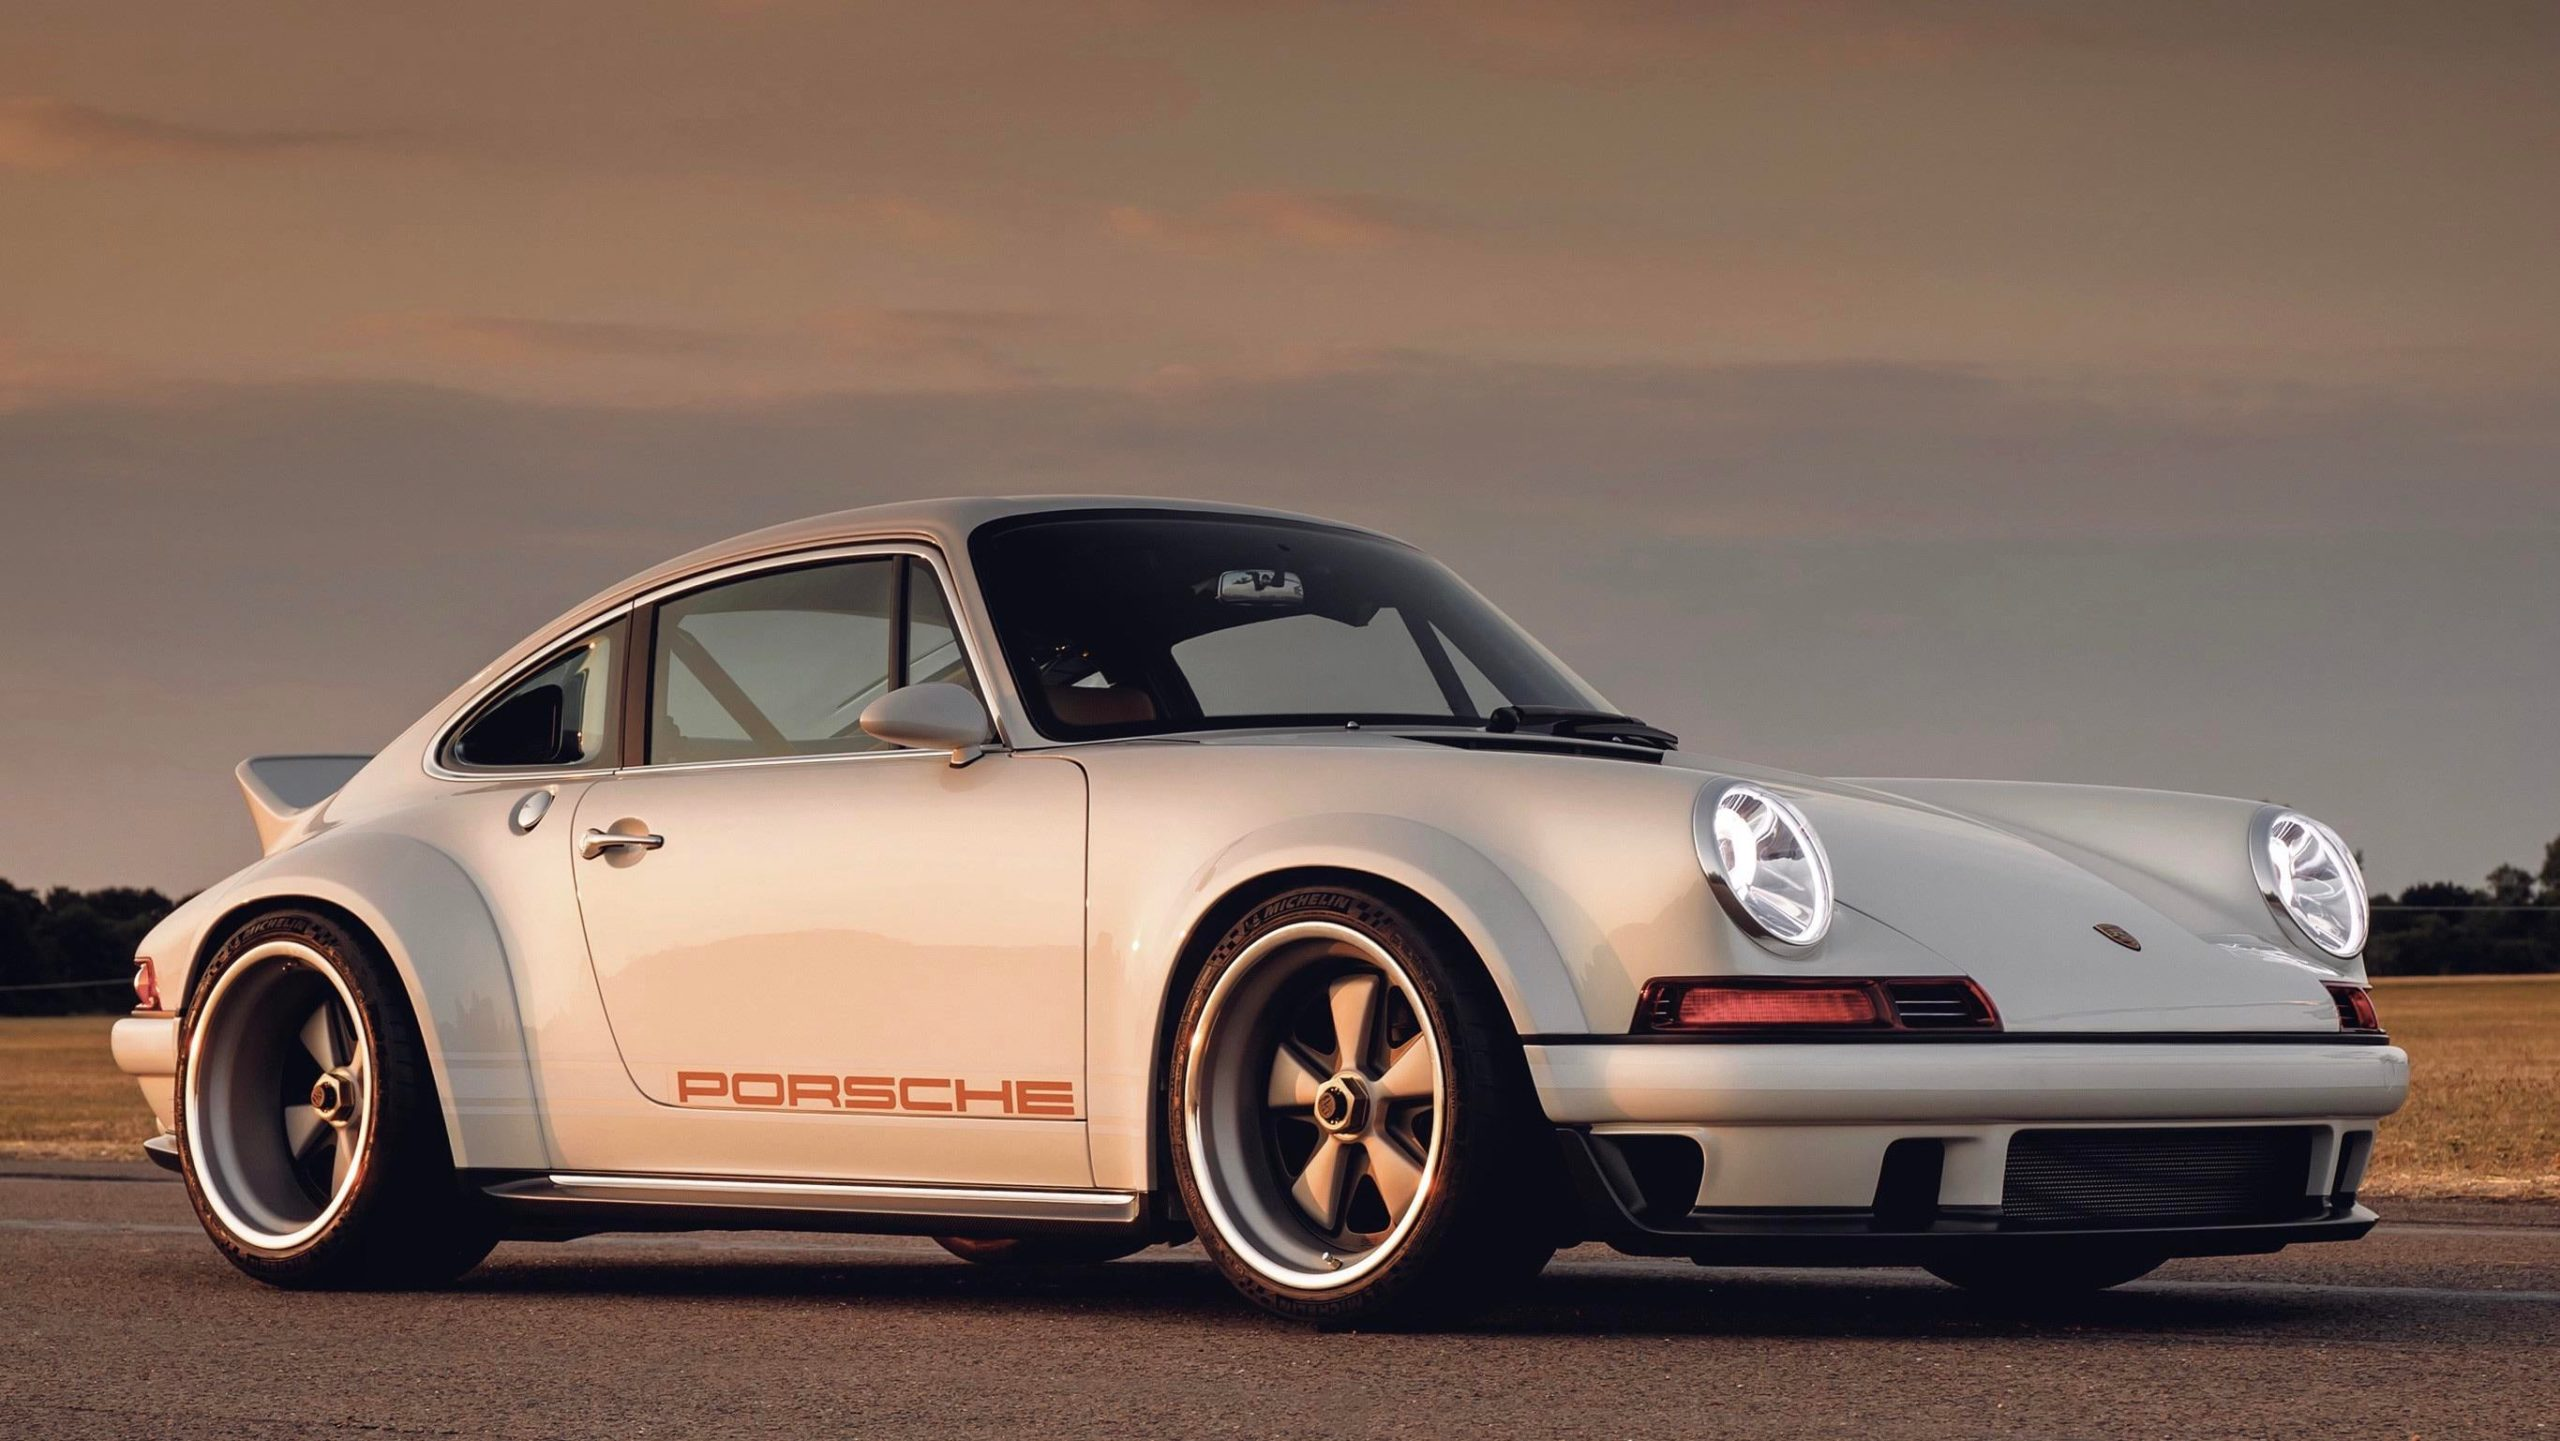 Old School Porsche still looks great!